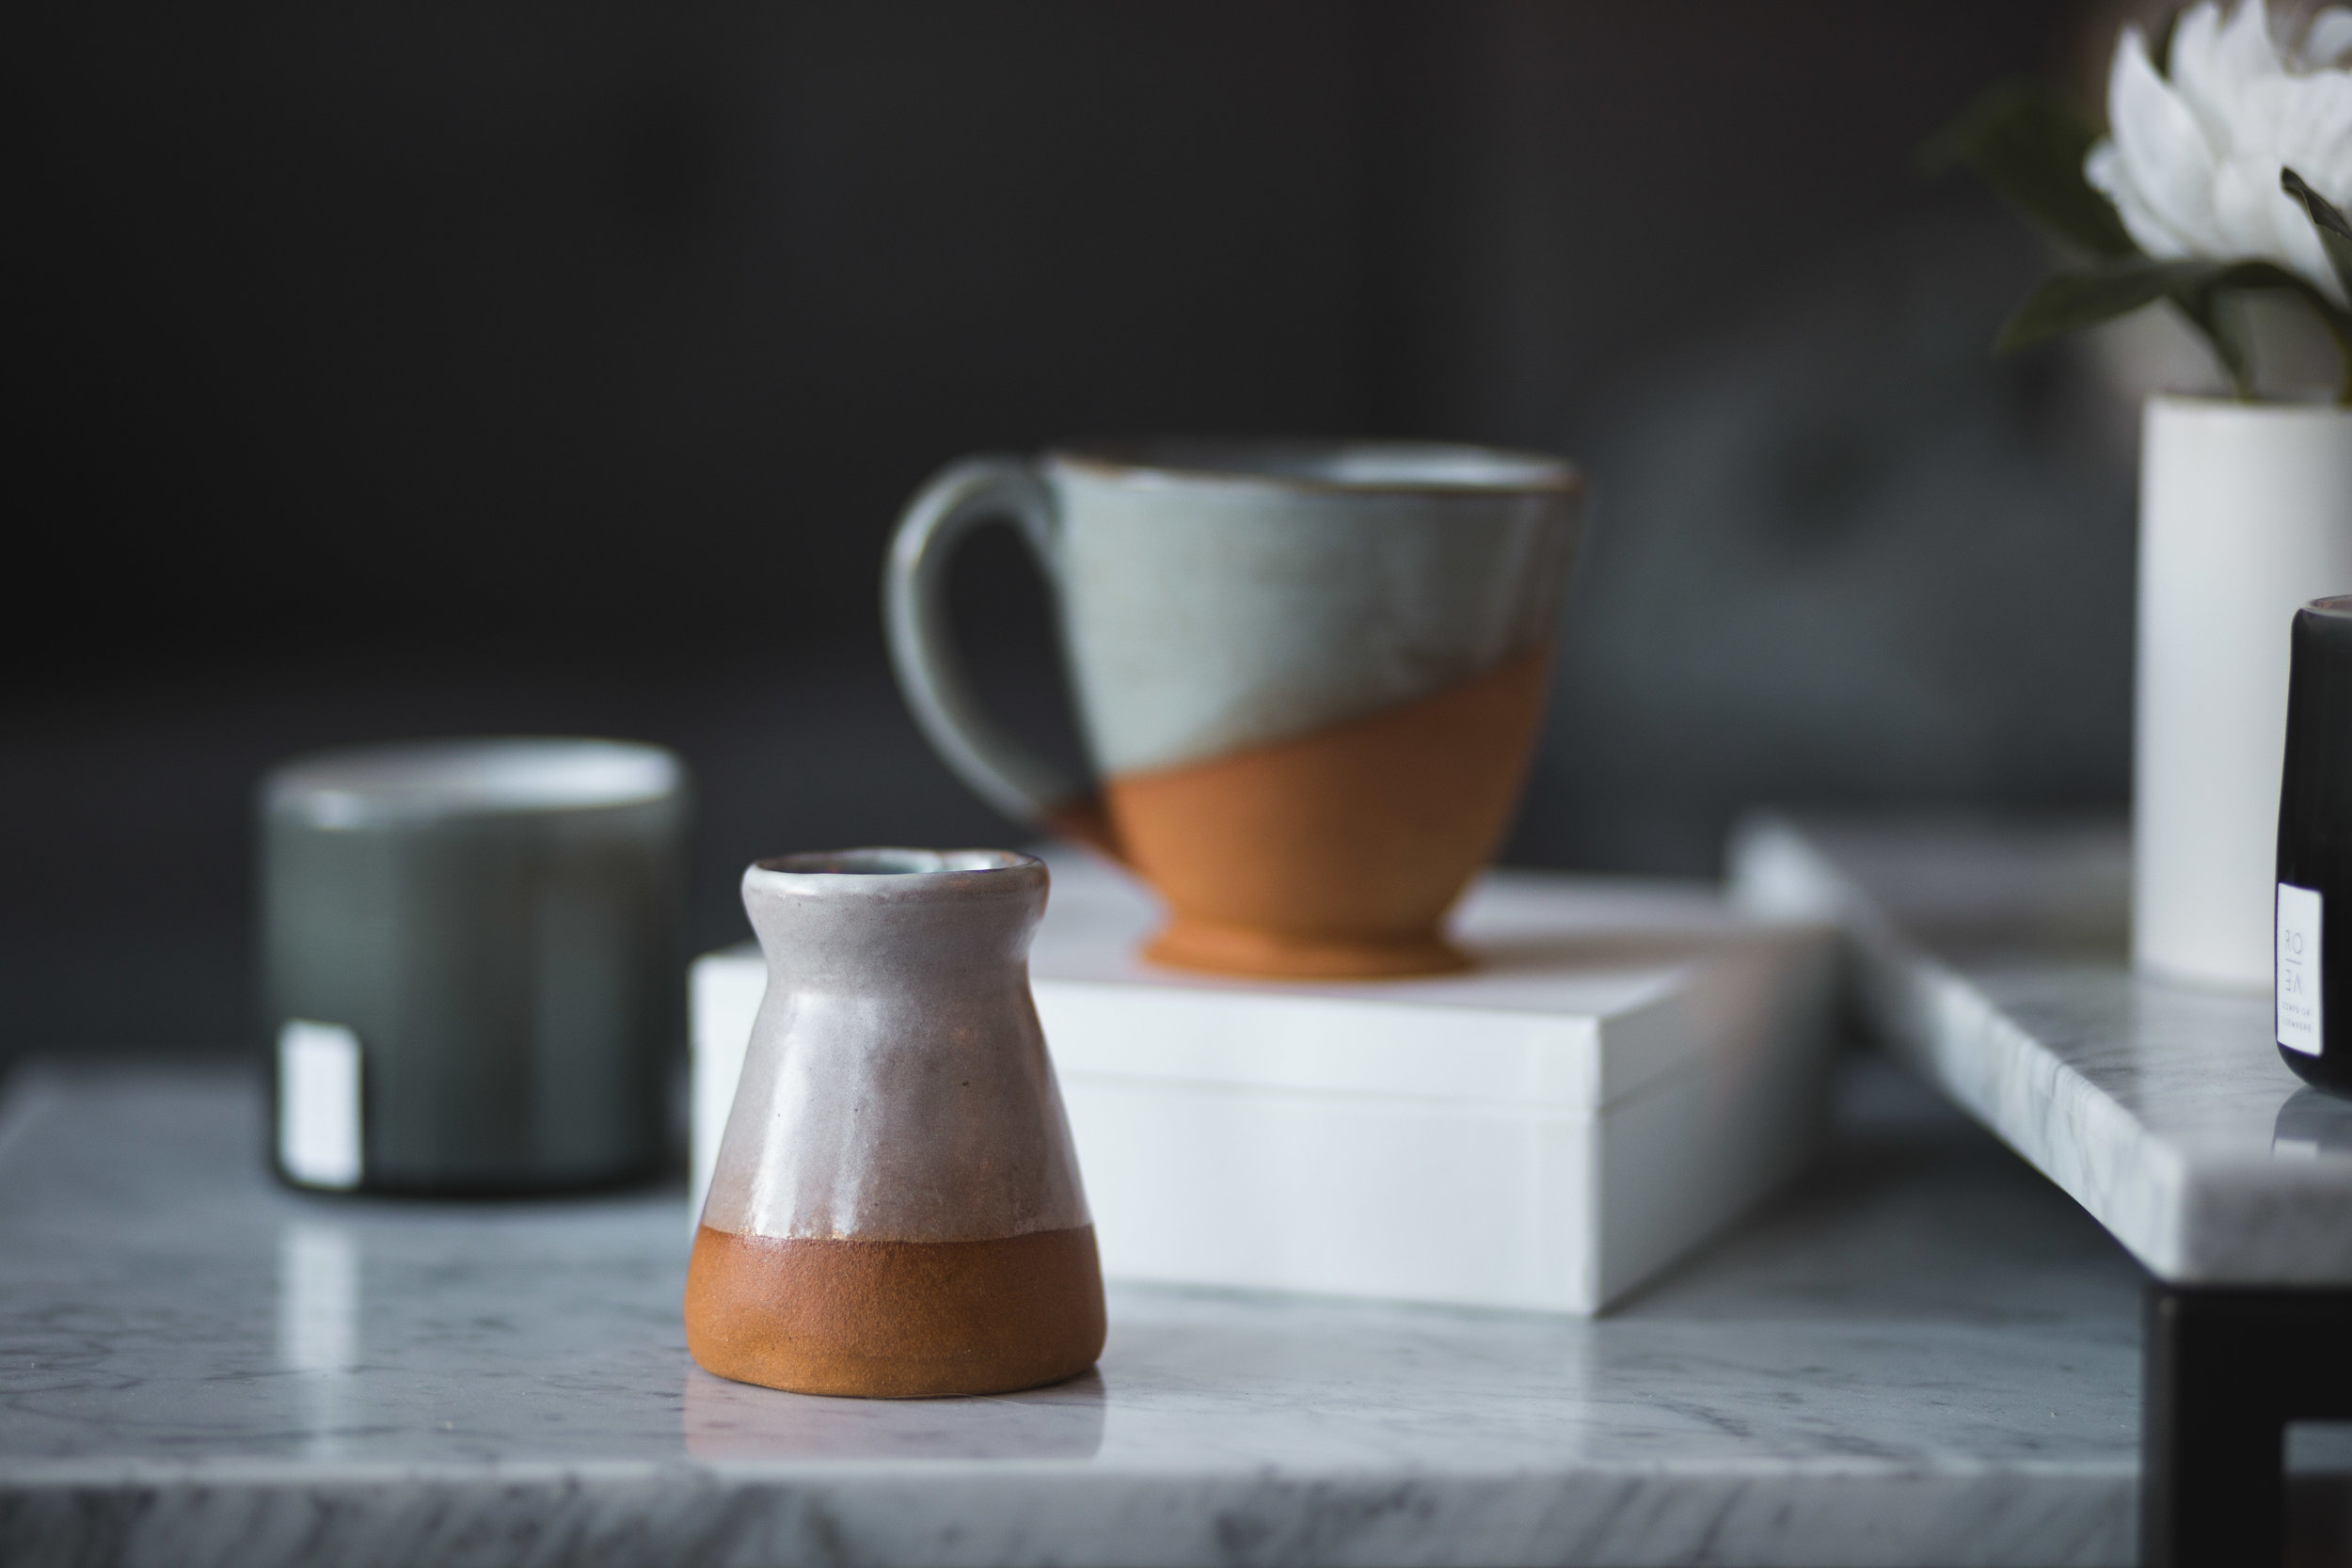 Photography by Allie Wang for a potter friend in order to build a starter portfolio